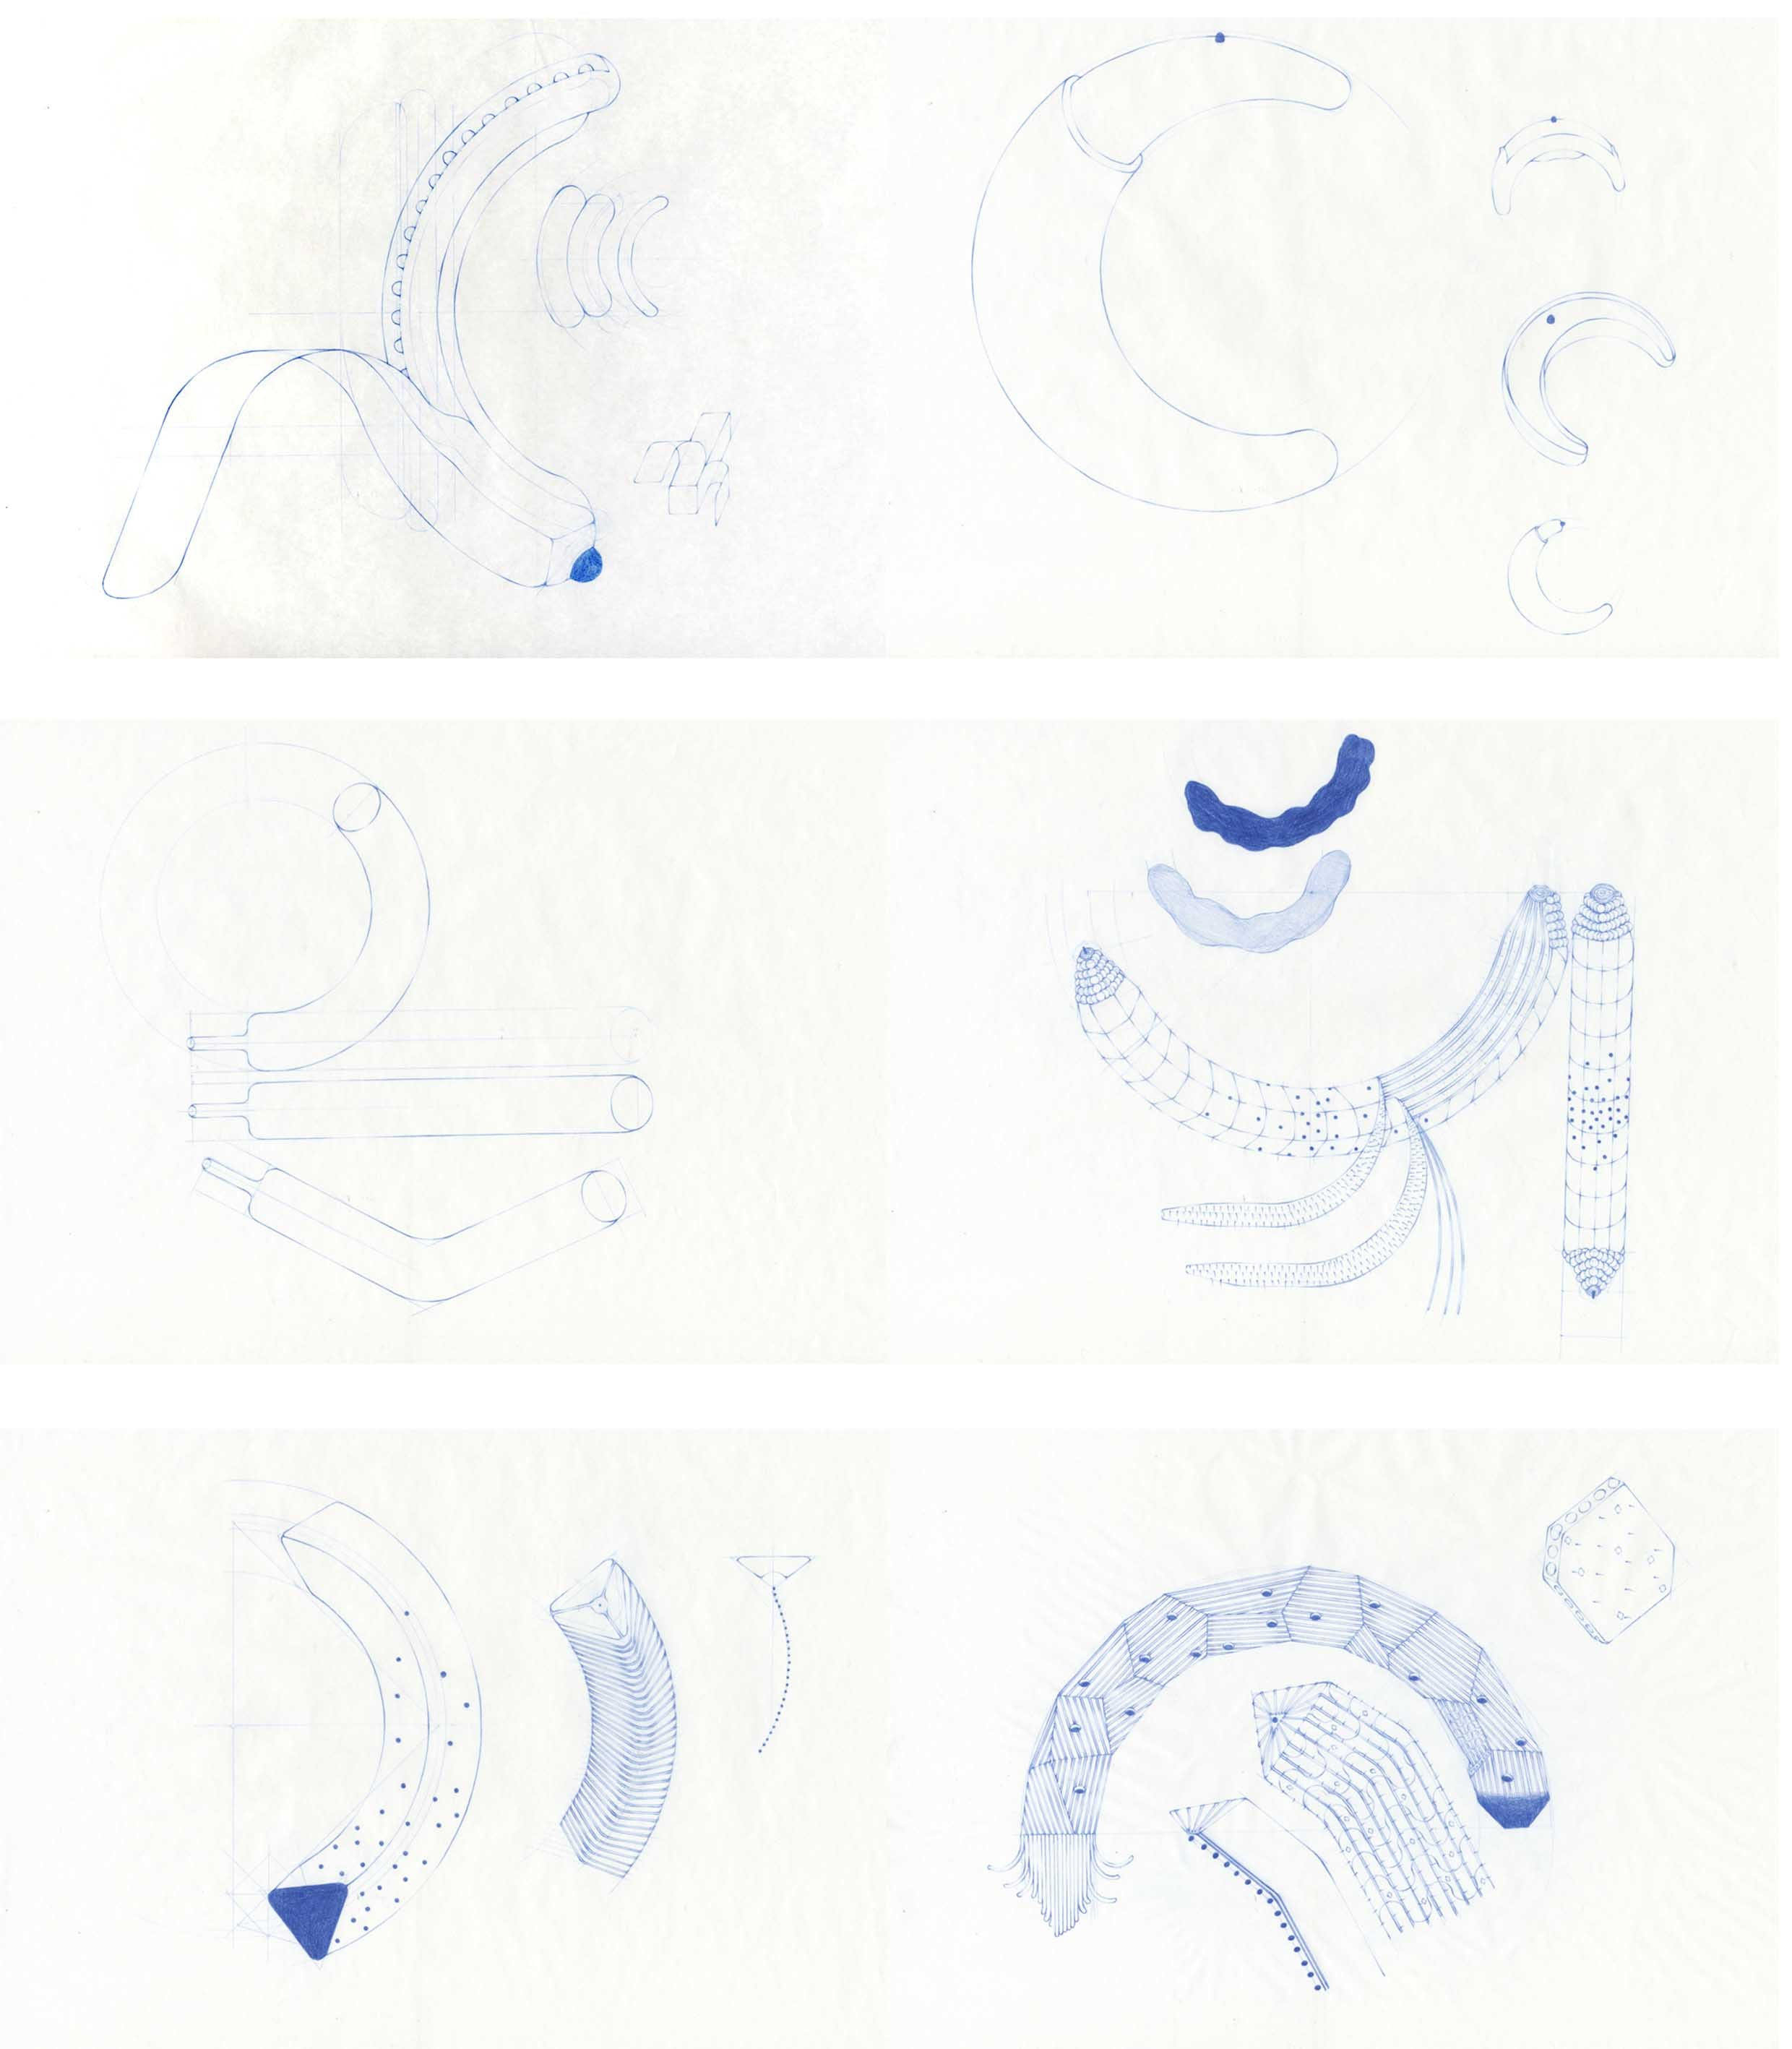 left:banana#3,recollection/(31),male,america/(28),female,german/(28),female,japan right:banana#3,observation/(31),male,america/(28),female,german/(28),female,japan